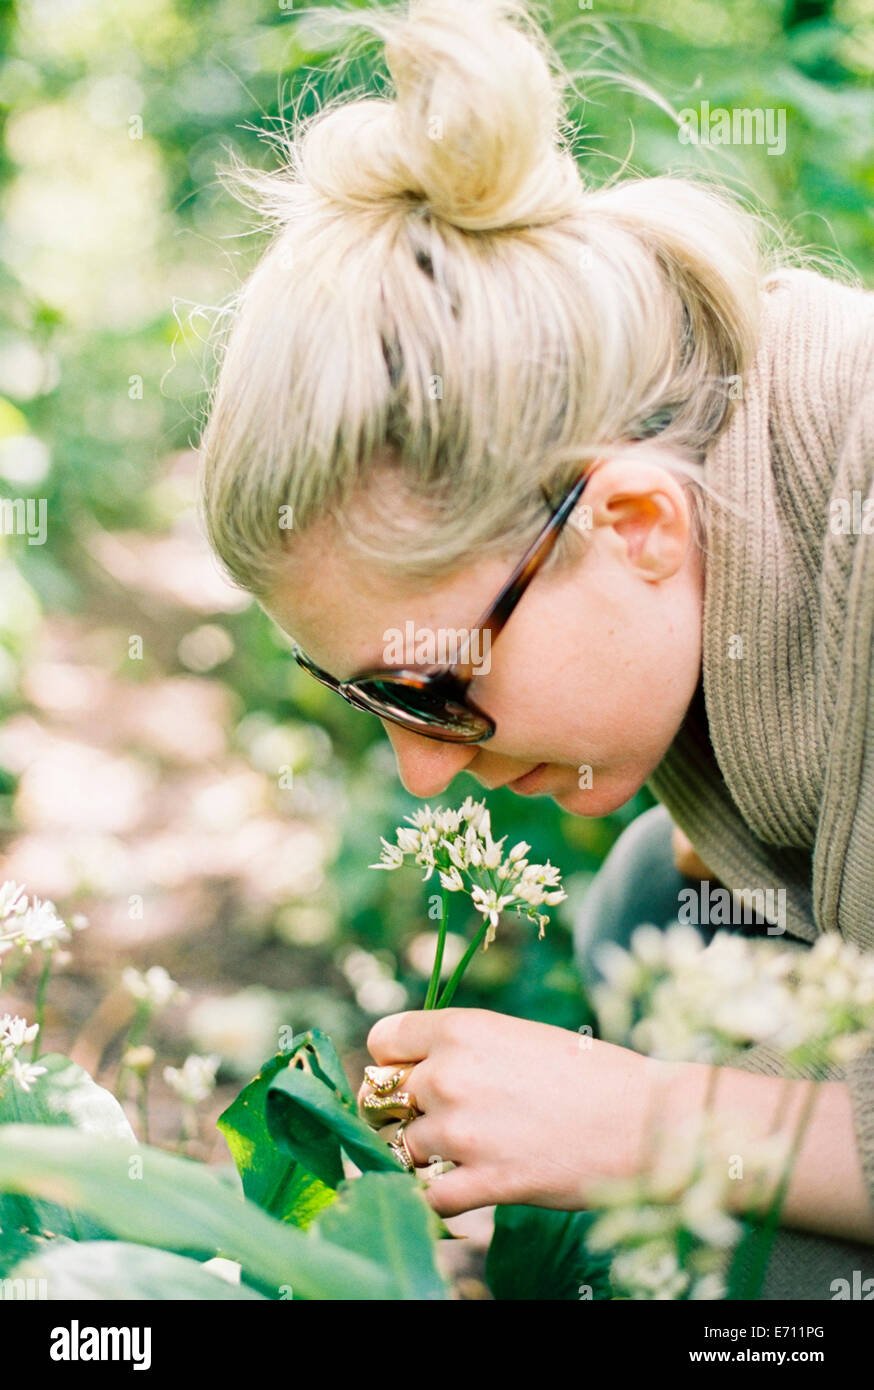 A woman leaning down to examine a flowerhead. - Stock Image